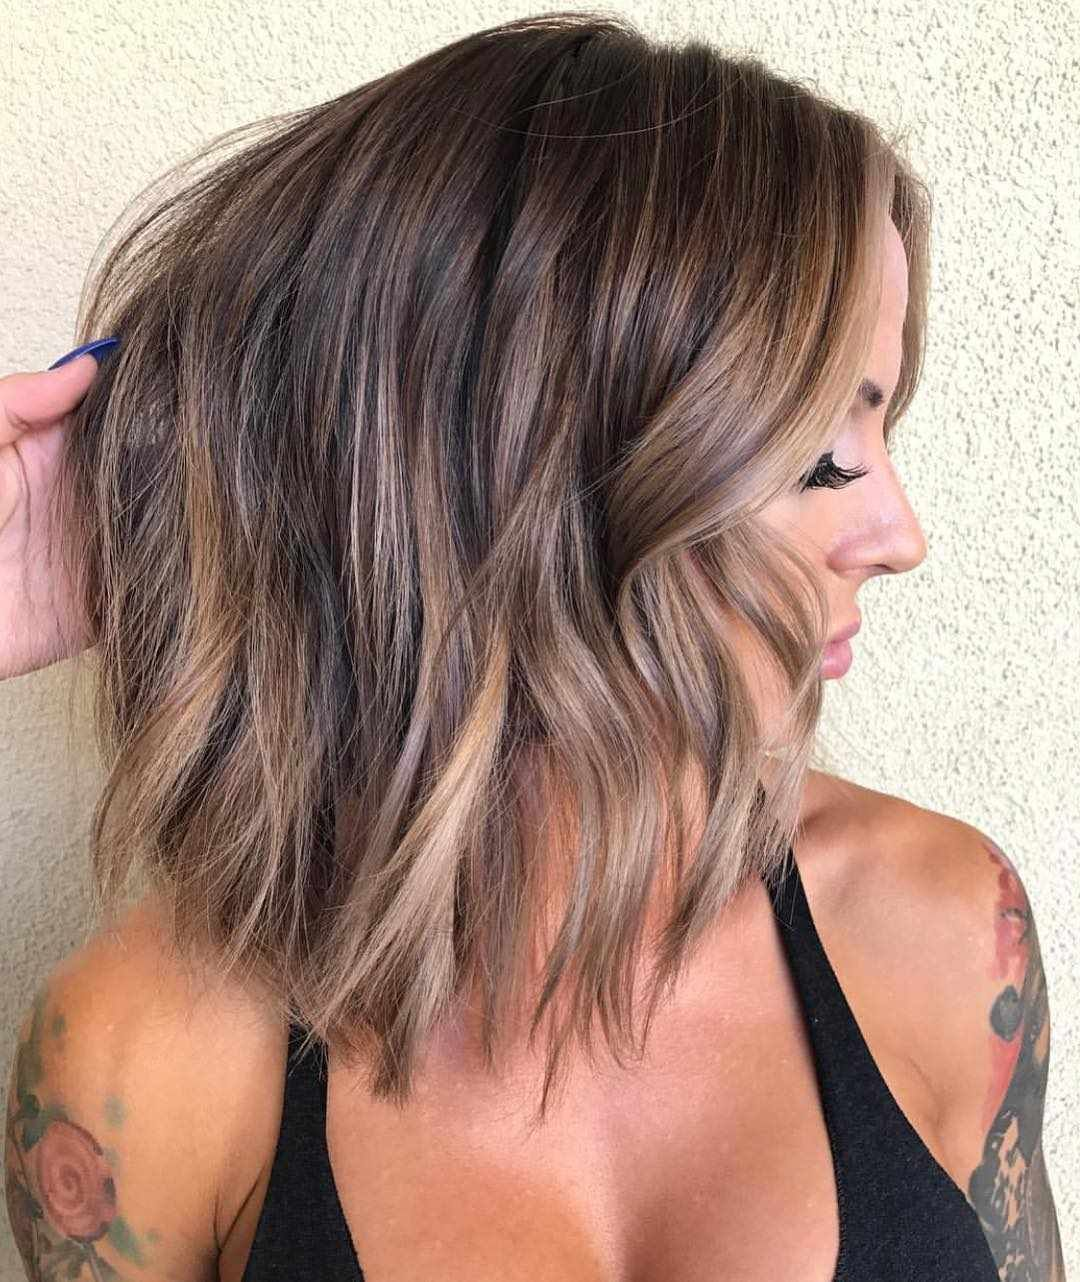 30 Balayage Hair Ideas For Long and Short Hair 2019 #hairideas